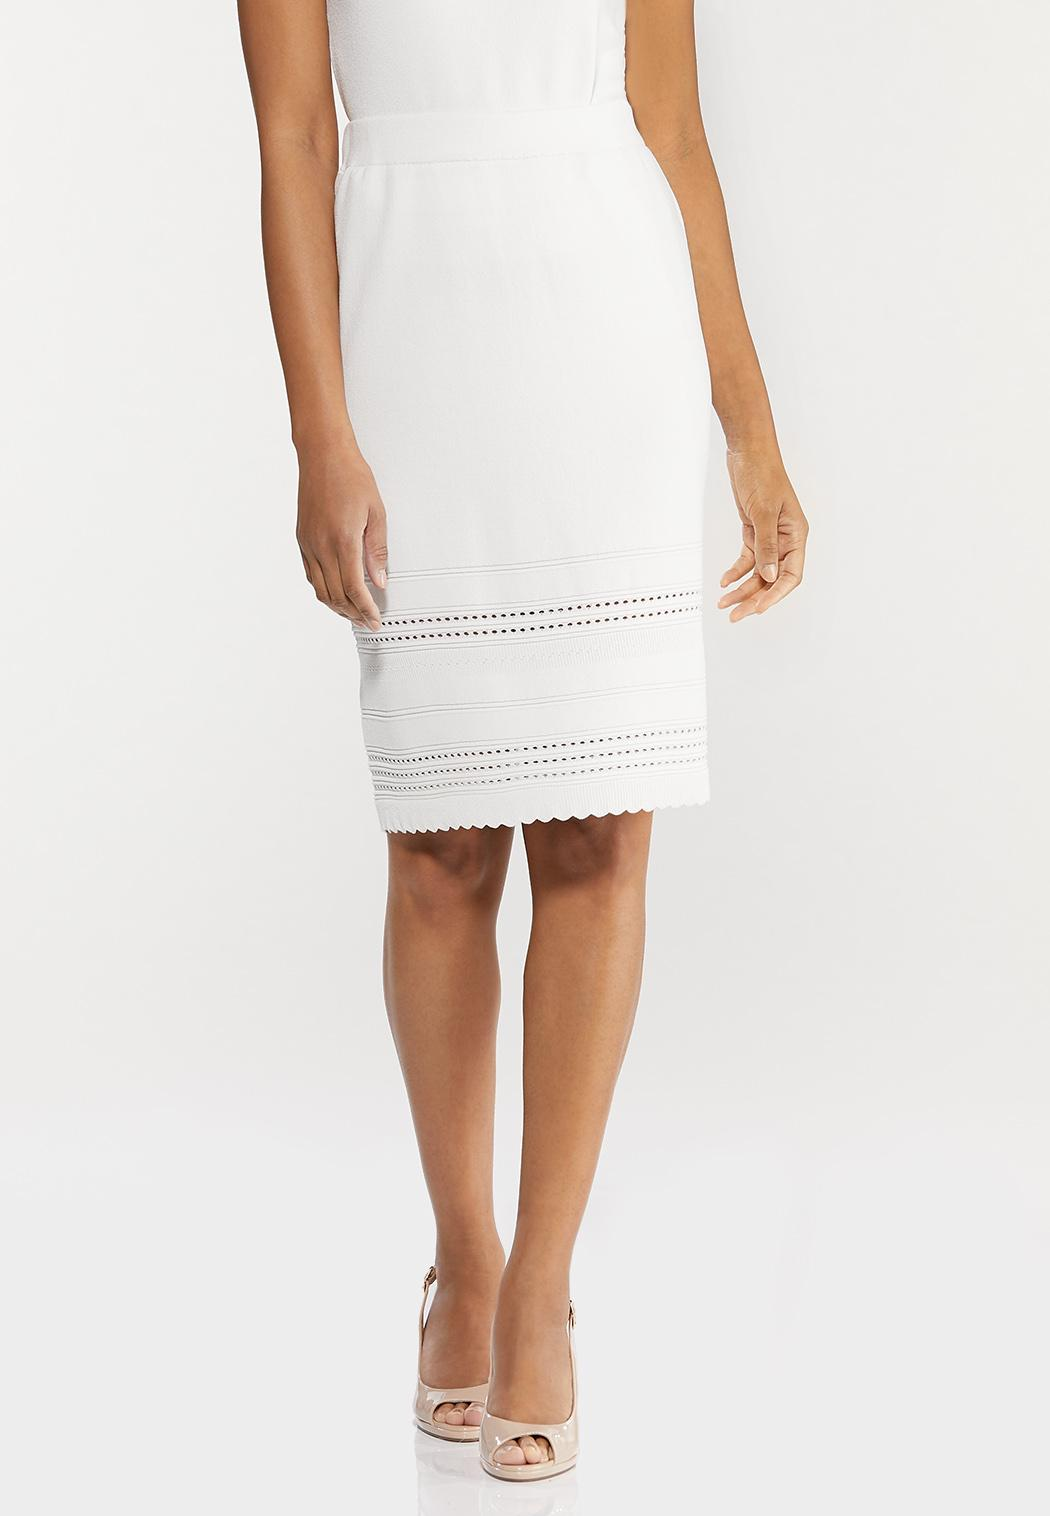 Plus Size Ivory Knit Skirt